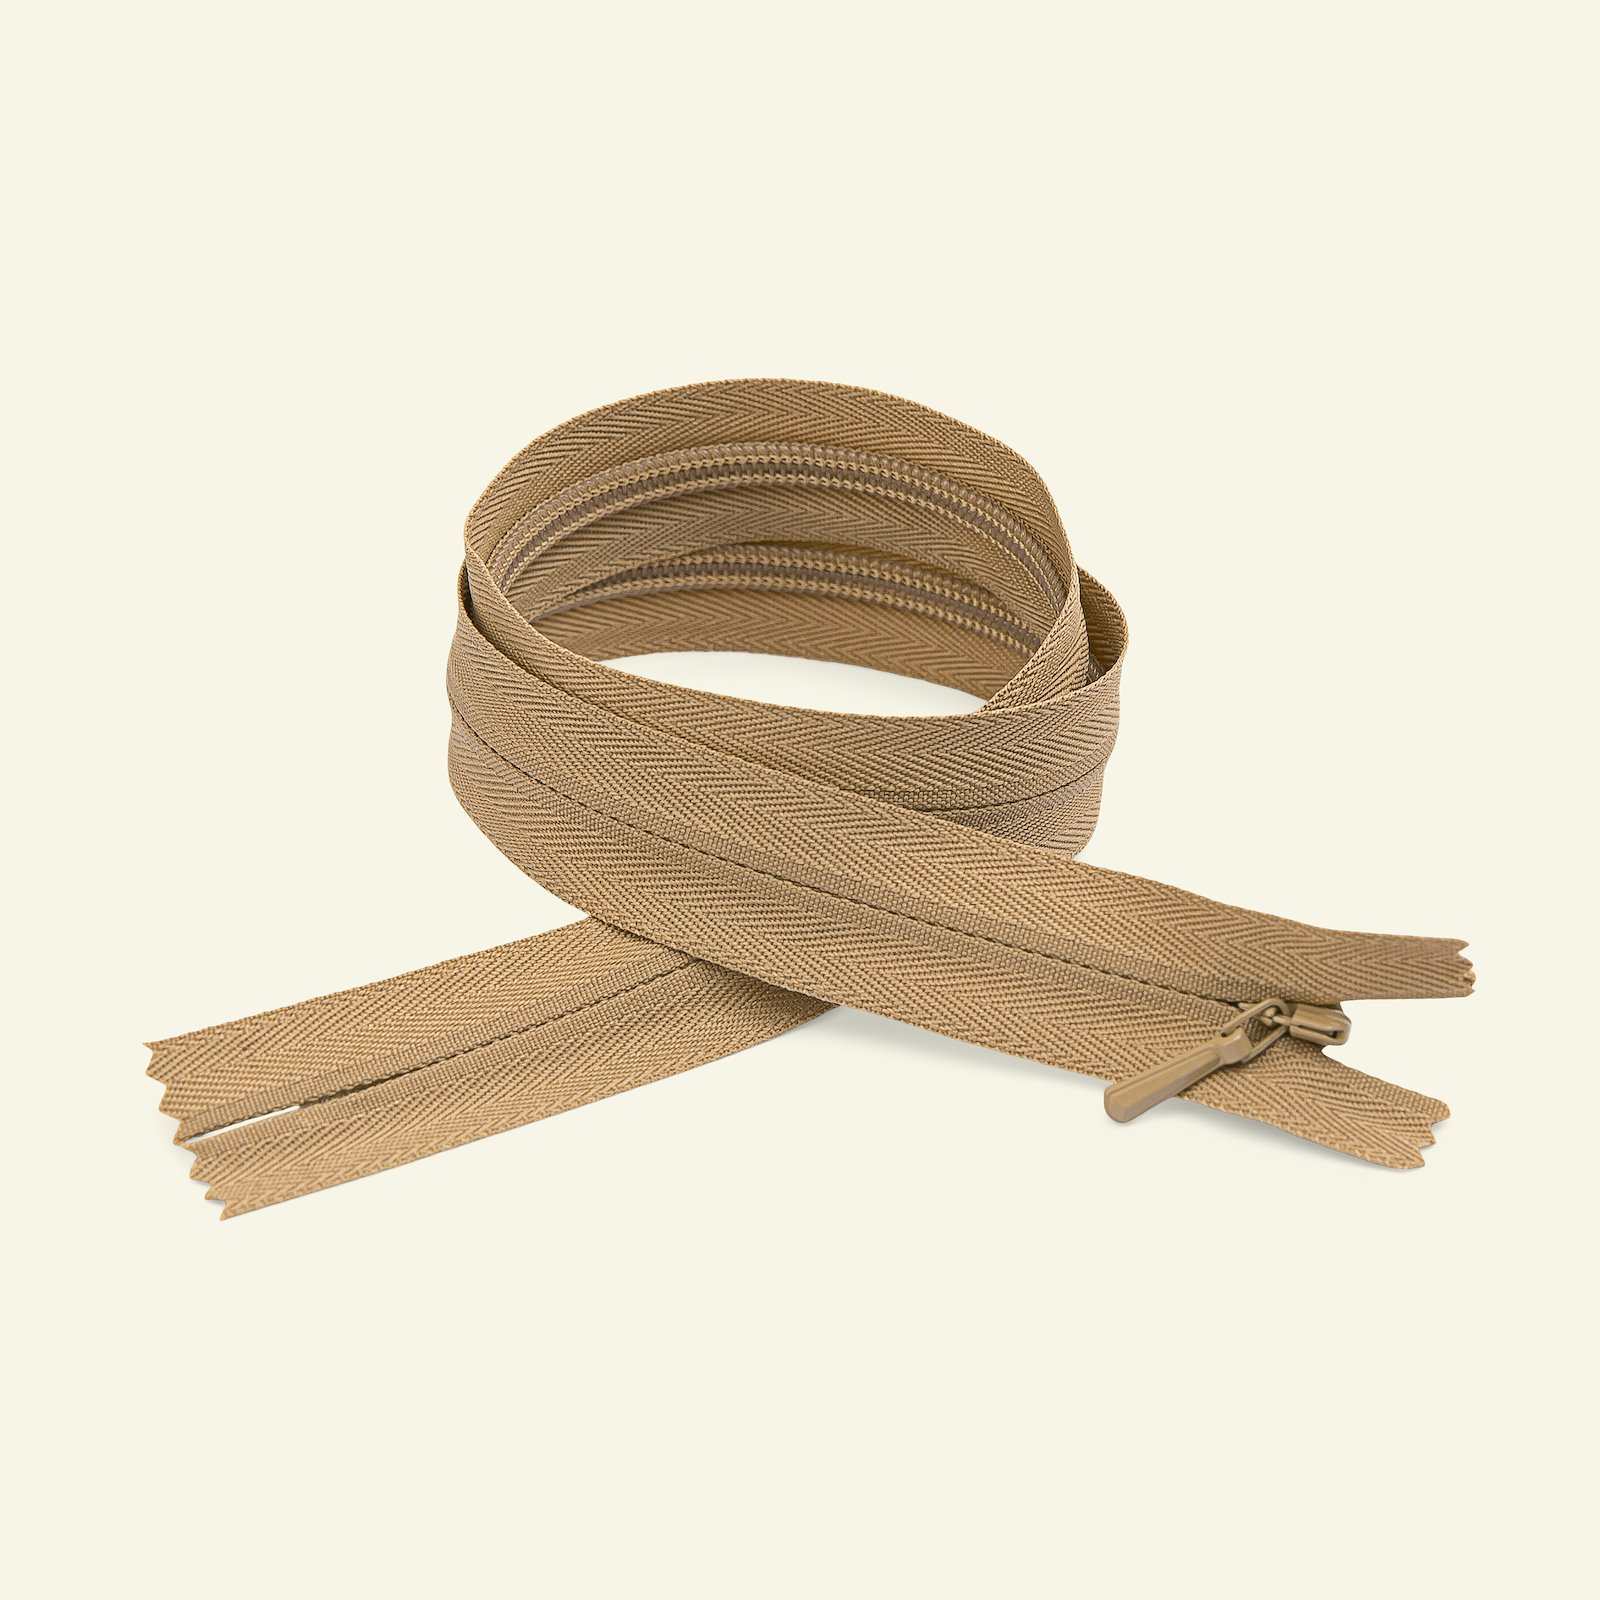 YKK zip 4mm invisible closed 30cm sand x40738_pack